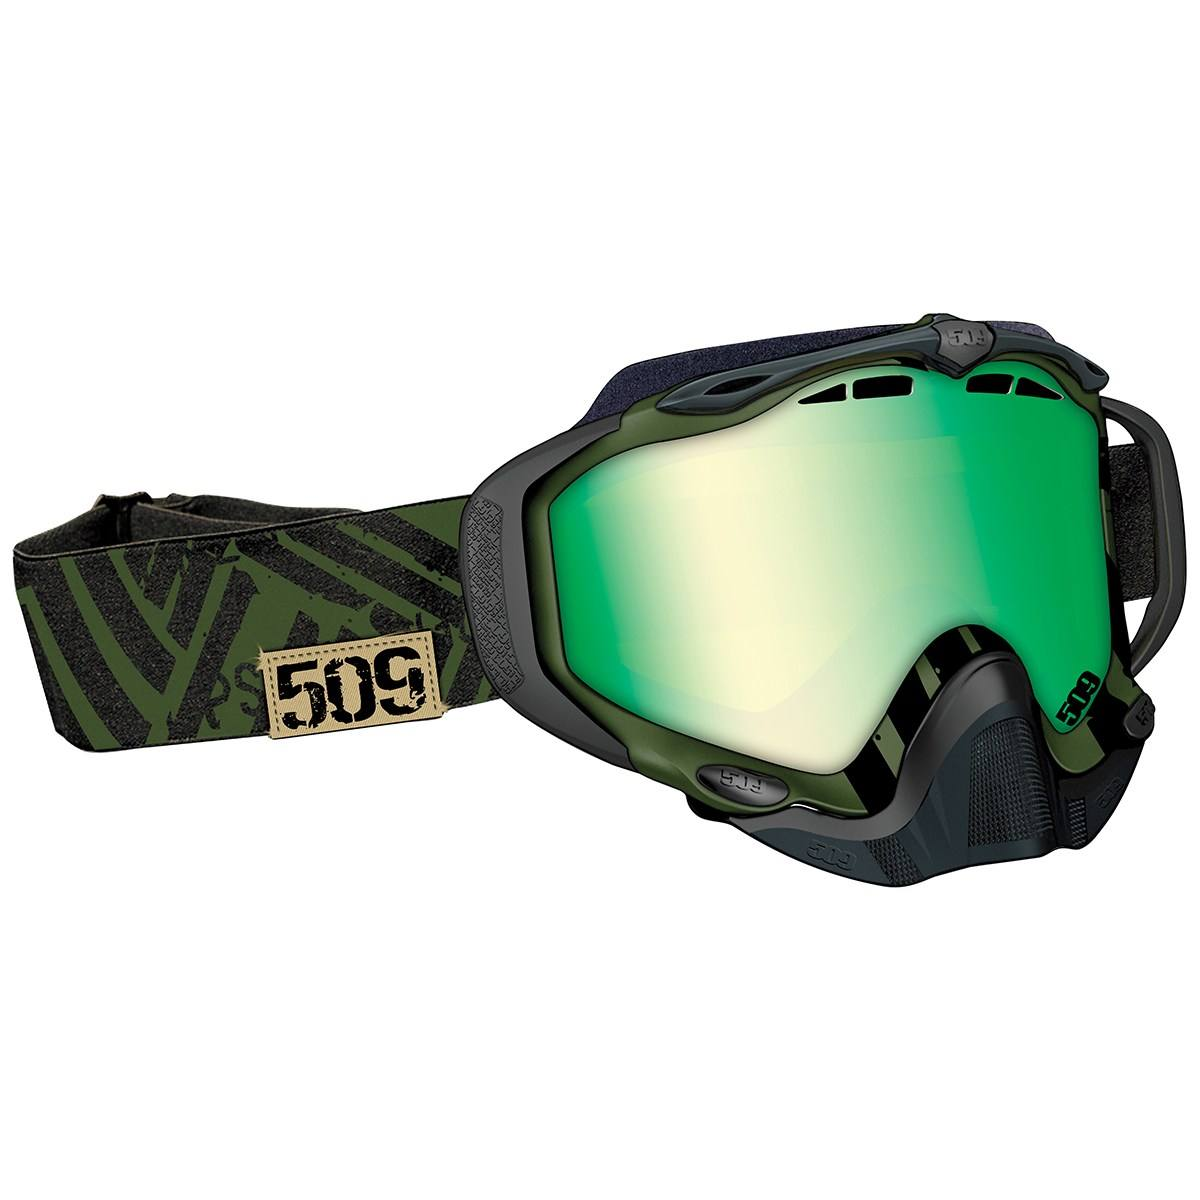 b3c8280569e7 SINISTER X5 GOGGLES BY 509® for sale in Jackman